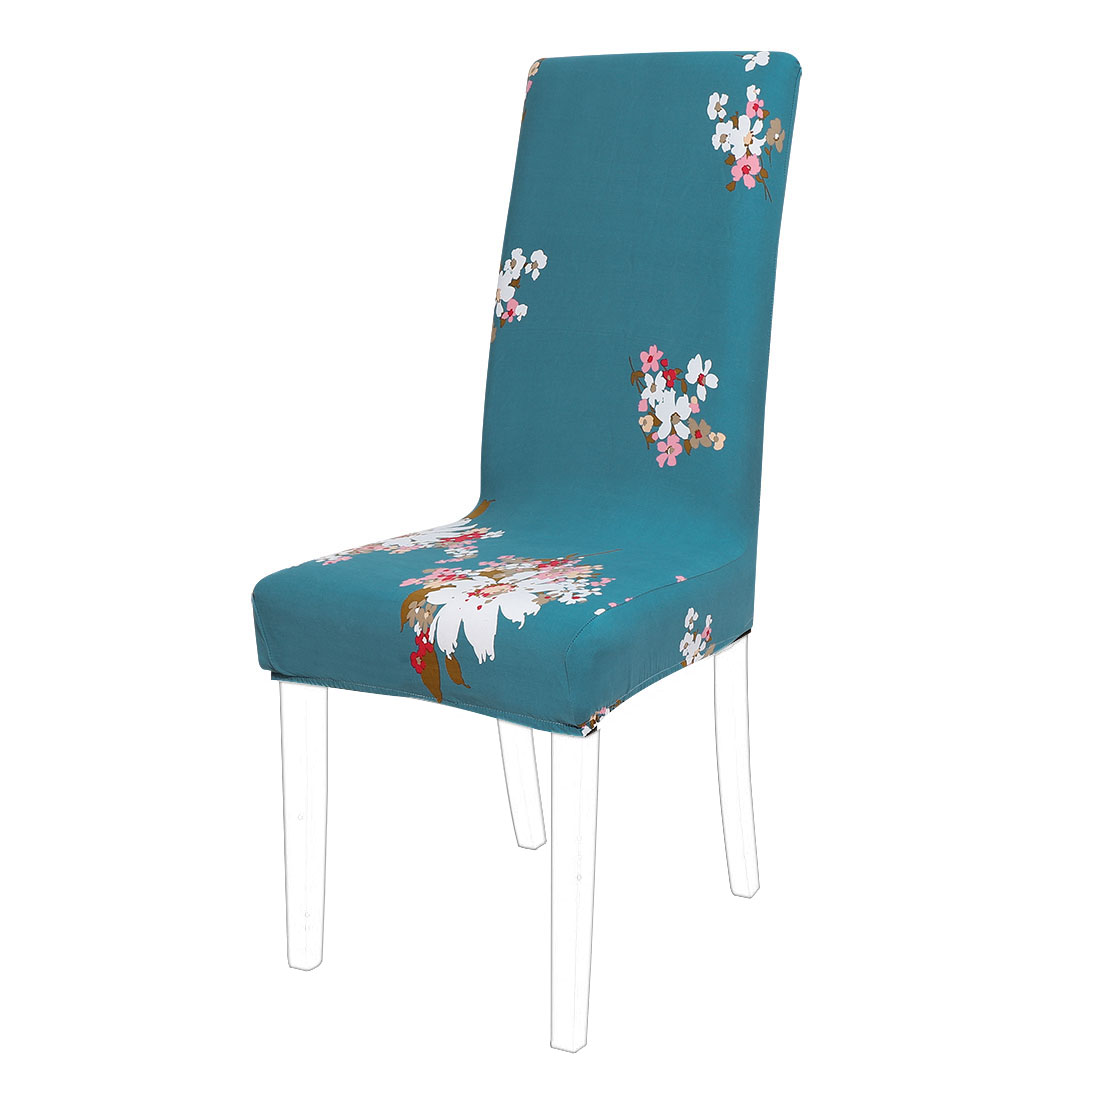 Floral Print Spandex Chair Covers Fit Home Dining Room Seat Slipcover, Style 9